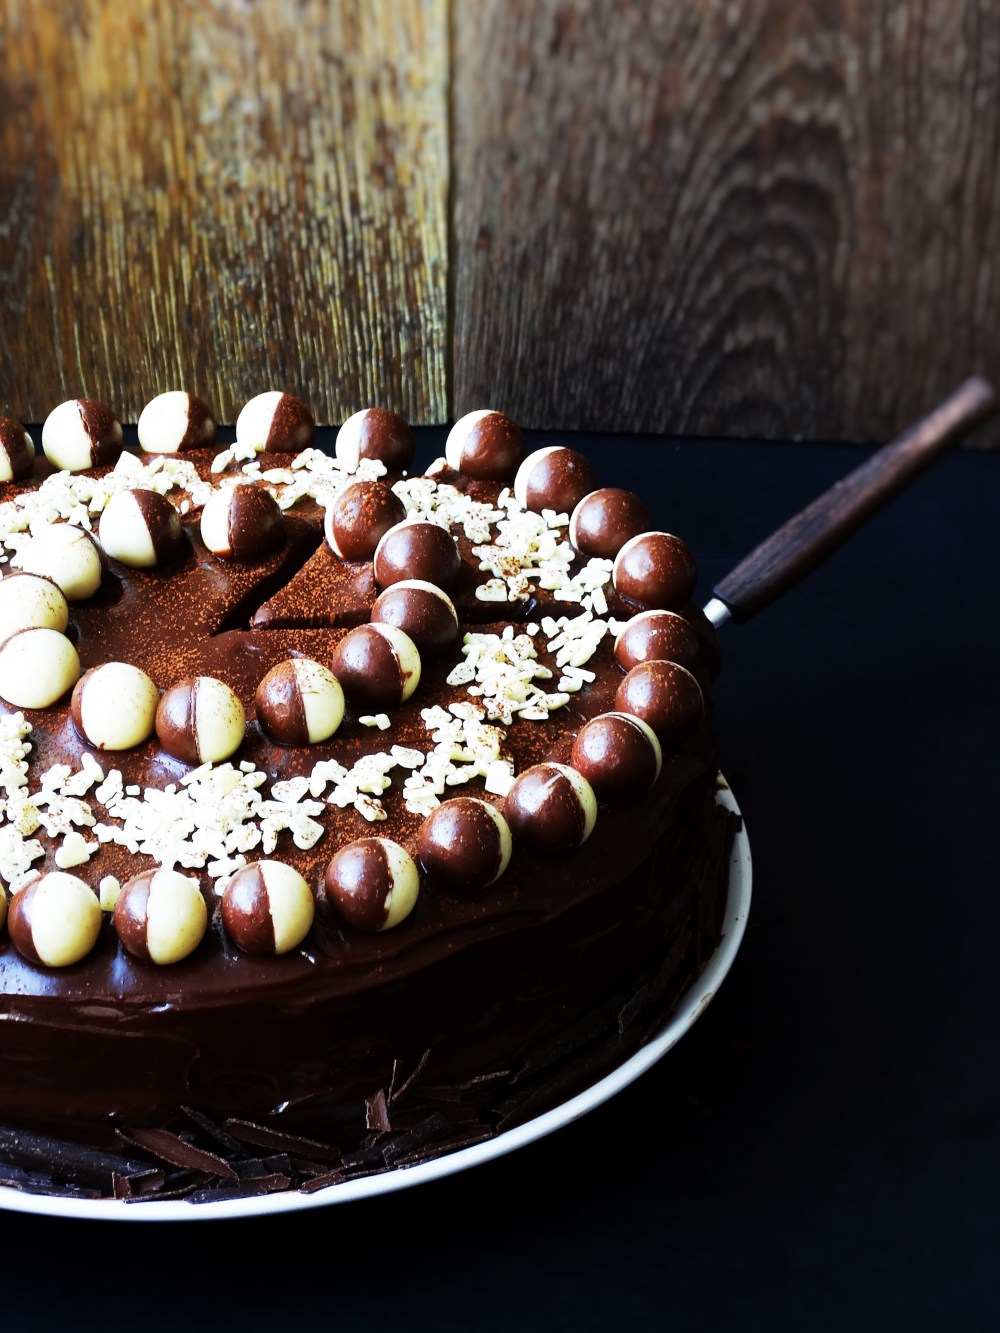 Recept van de maand #6: Triple chocolate cake